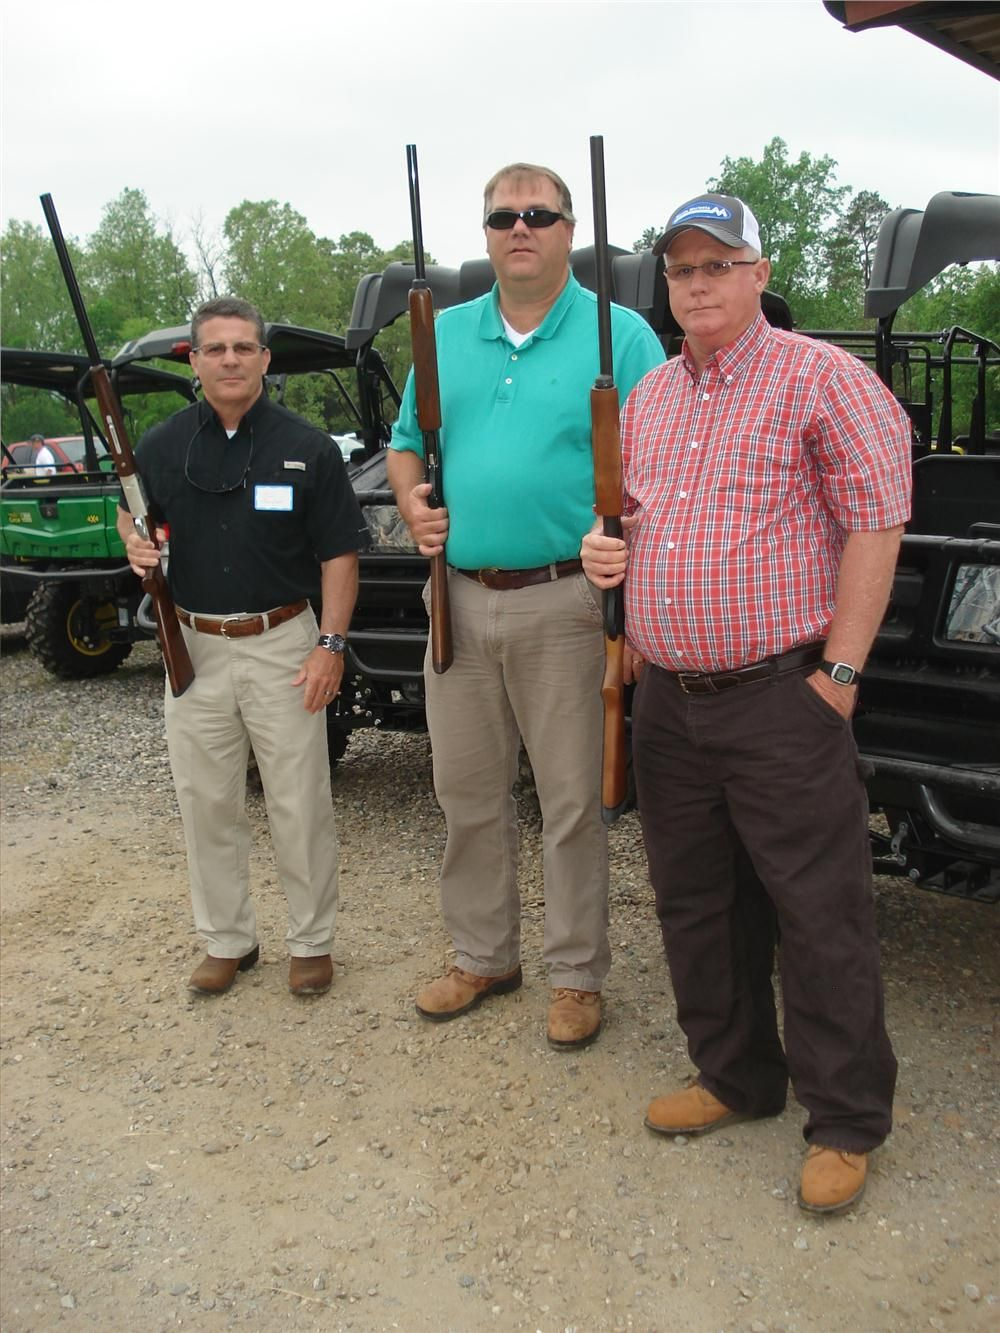 (L-R): Jim Thompson, Paul Ware and Ken Johnson, all of Martin Marietta Materials, head out on the course.